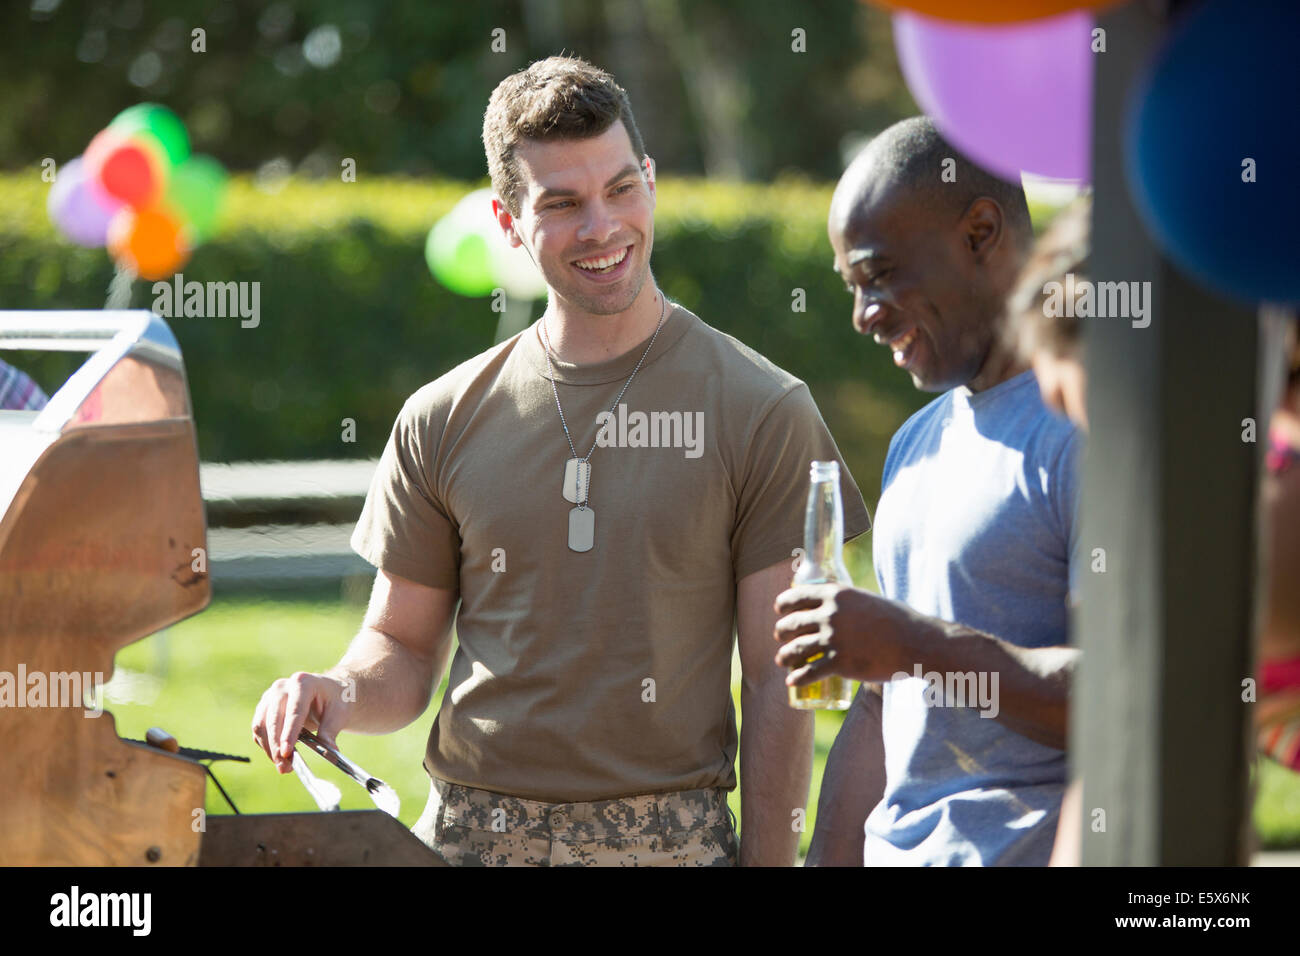 Male soldier barbecuing with friends at homecoming party - Stock Image